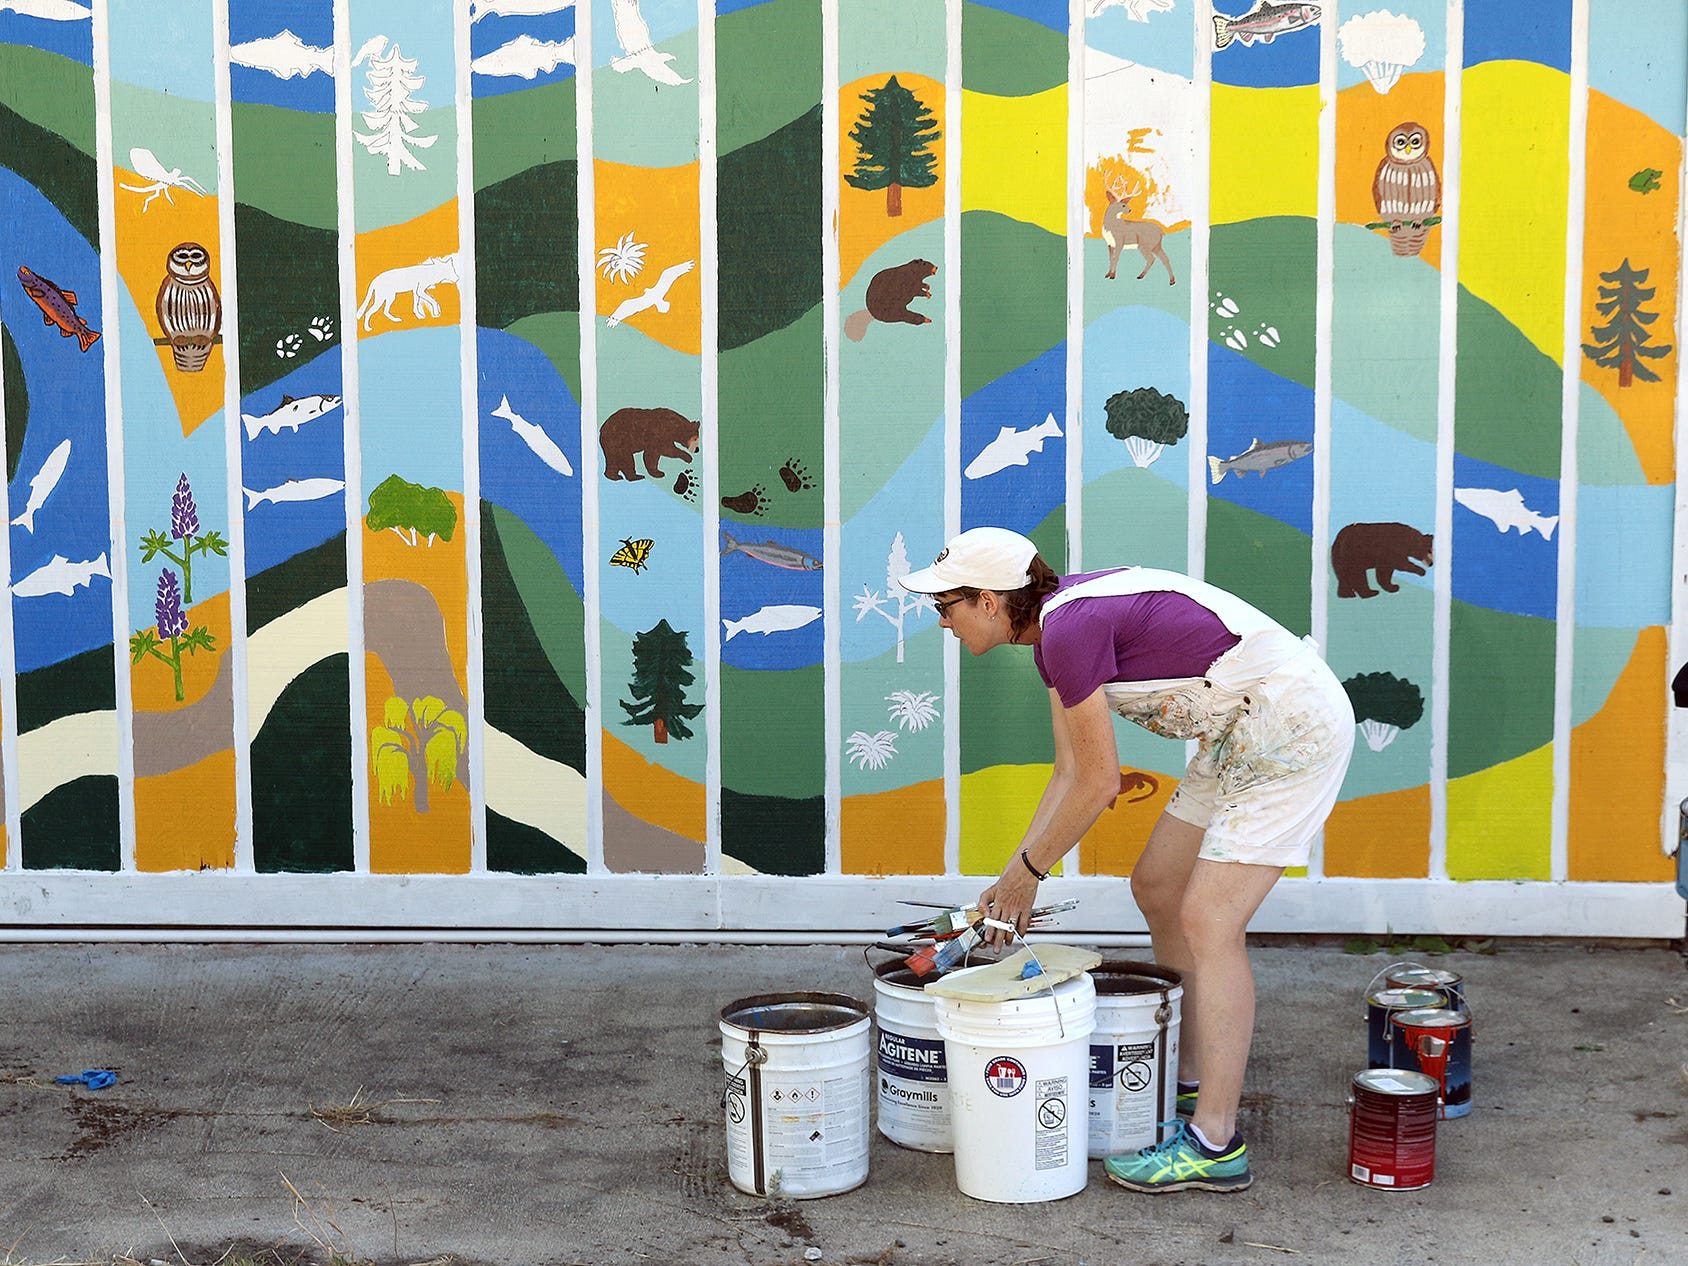 Artist Erica Applewhite, of Bremerton, takes care of the used paint brushes after the mural painting at the Pavilion building on the Markwick Property along Clear Creek in Silverdale on Wednesday August 1, 2018.